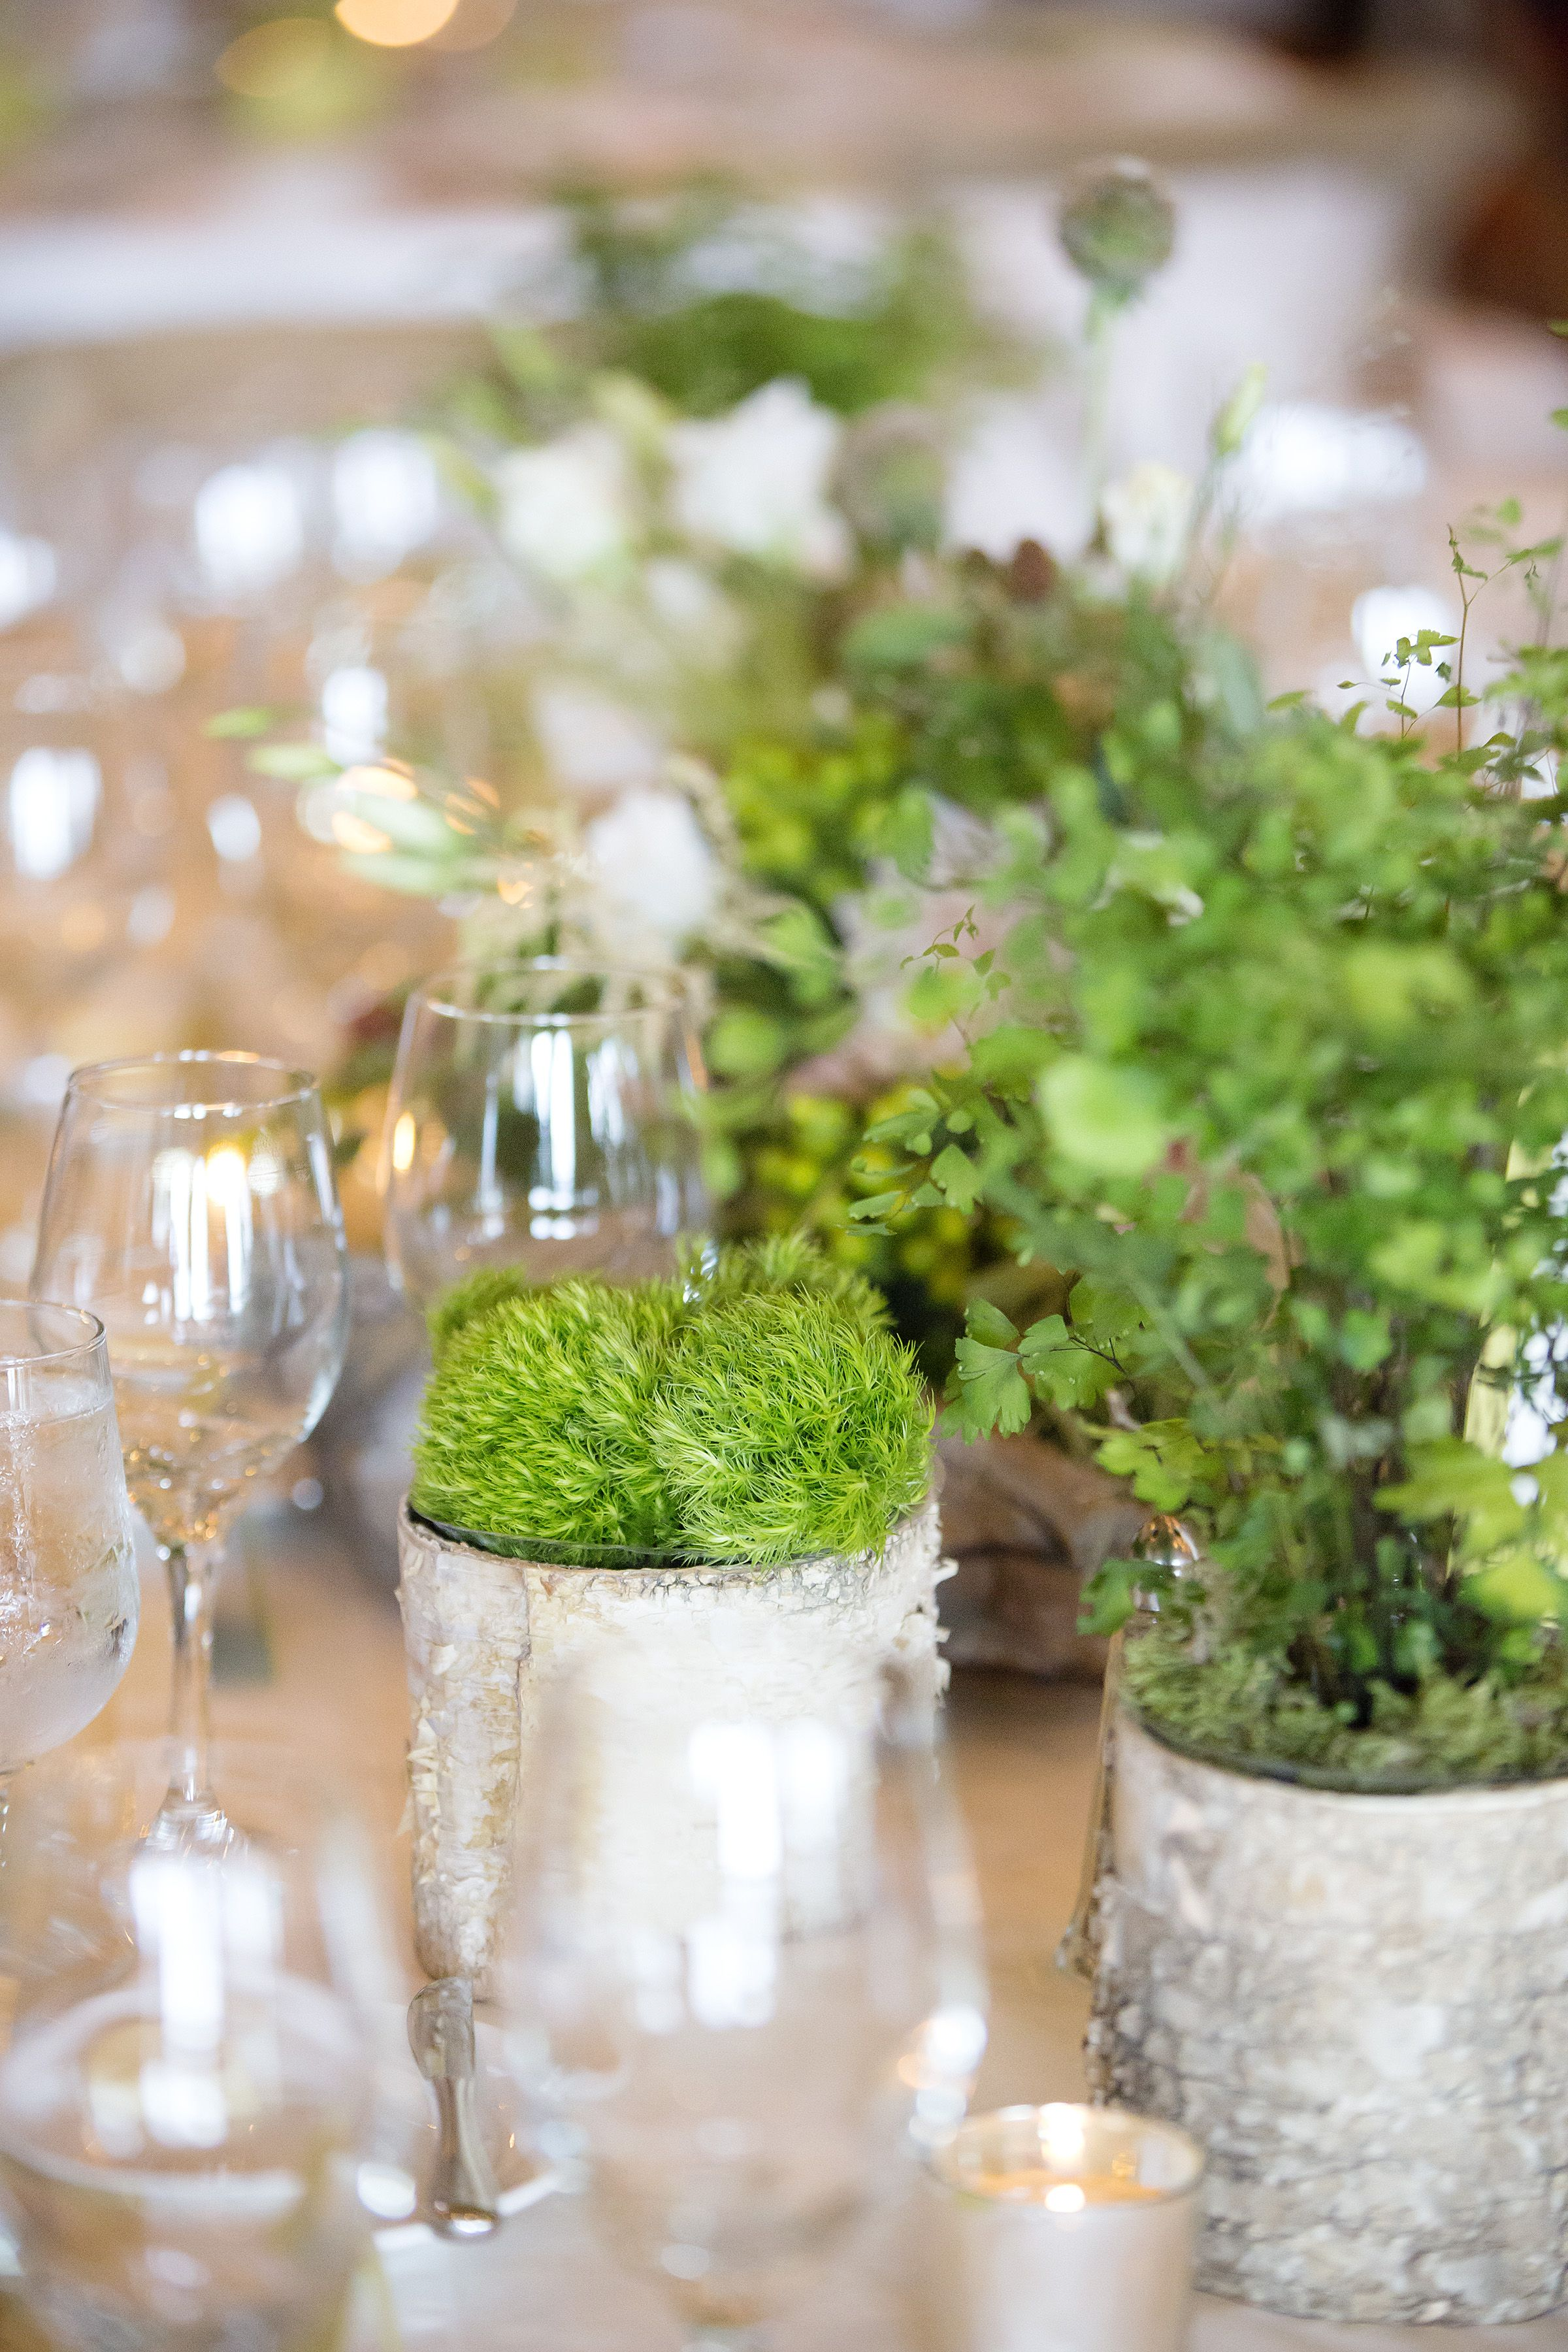 Floral décor - natural elements  Melina Wallisch Photography Featured on Style Me Pretty  http://www.stylemepretty.com/2015/02/04/stylish-lake-tahoe-summer-wedding/